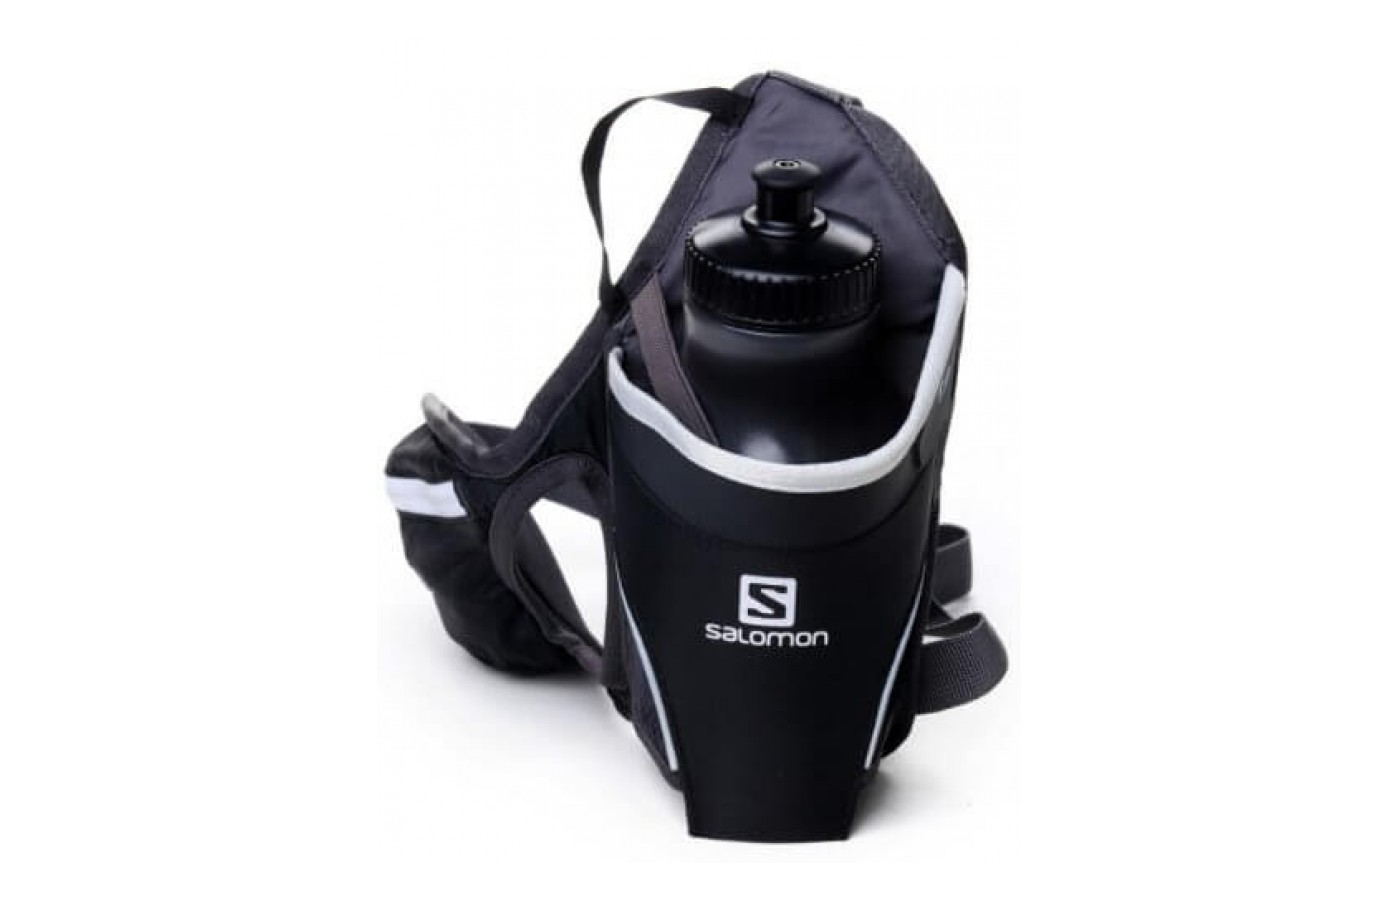 The Salomon Hydro 45 Belt includes a 20 ounce water bottle that fits in its pouch.